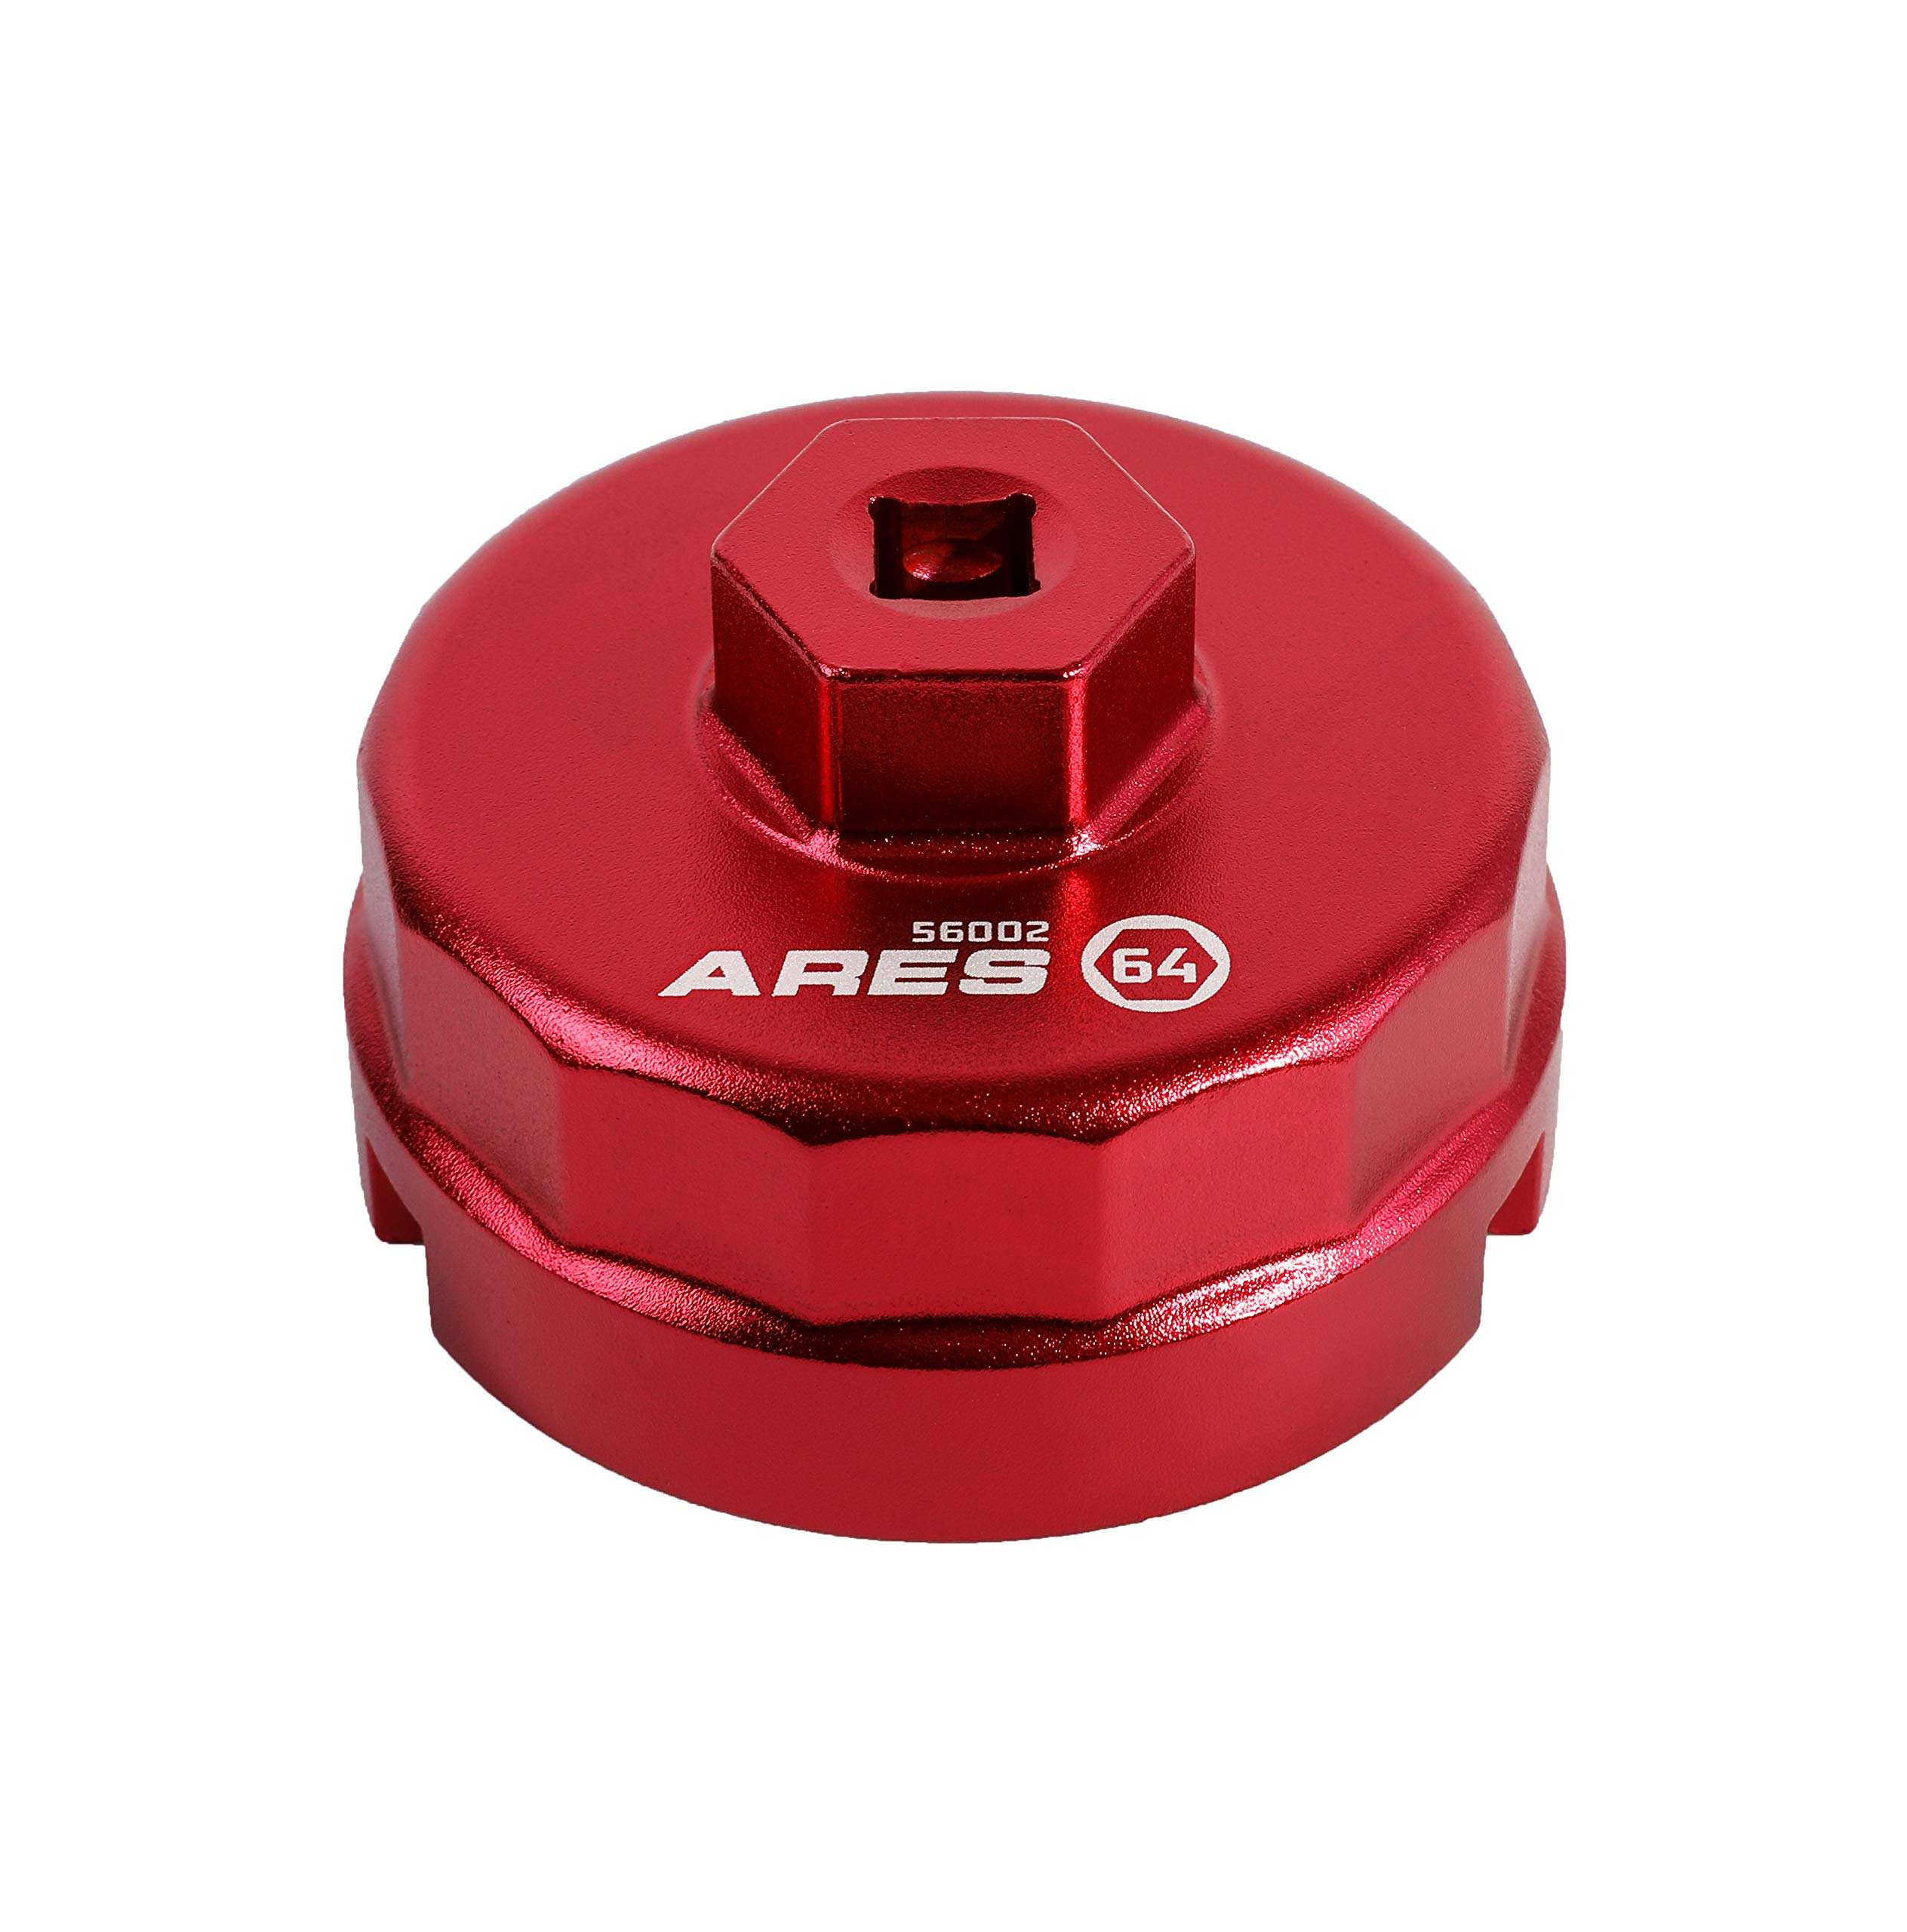 ARES 56002-64mm Oil Filter Cap Wrench for Toyota, Lexus, Scion 1.8 Liter Engines - 3/8-Inch Drive - Easily Remove Oil Filters on 4-Cylinder Engines